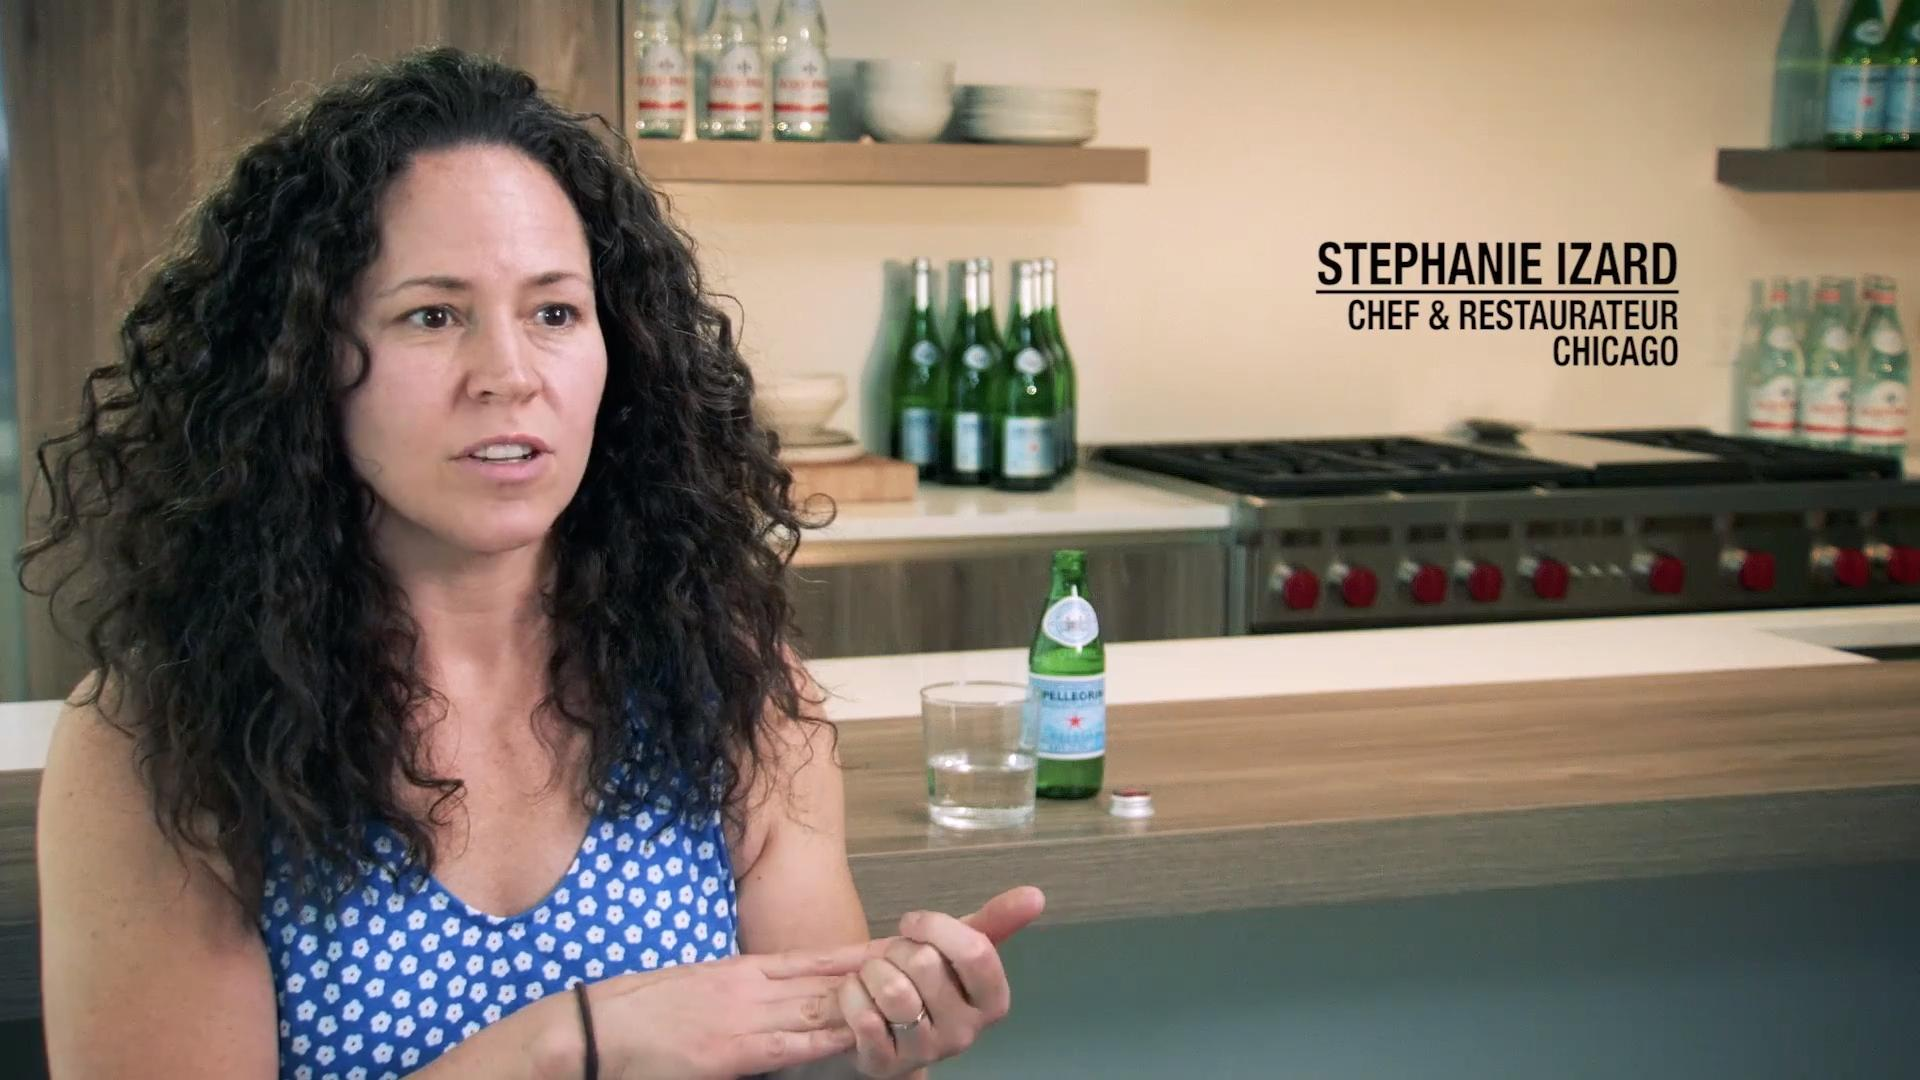 Stephanie Izard Interview: On Mentorship and the State of the Restaurant Industry Today